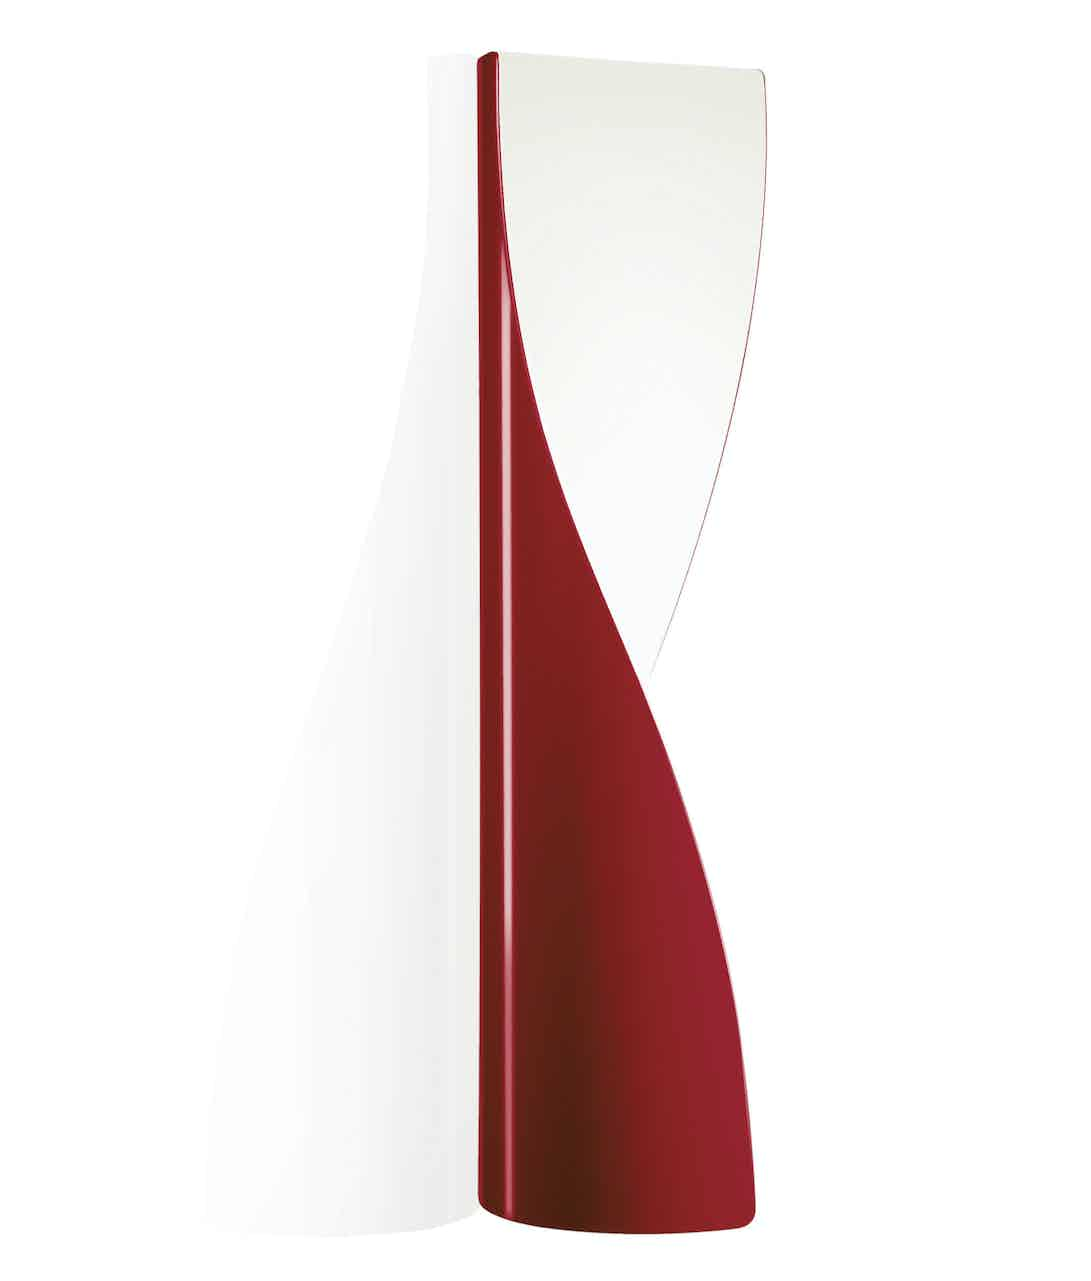 Kundalini lighting evita wall lamp red haute living